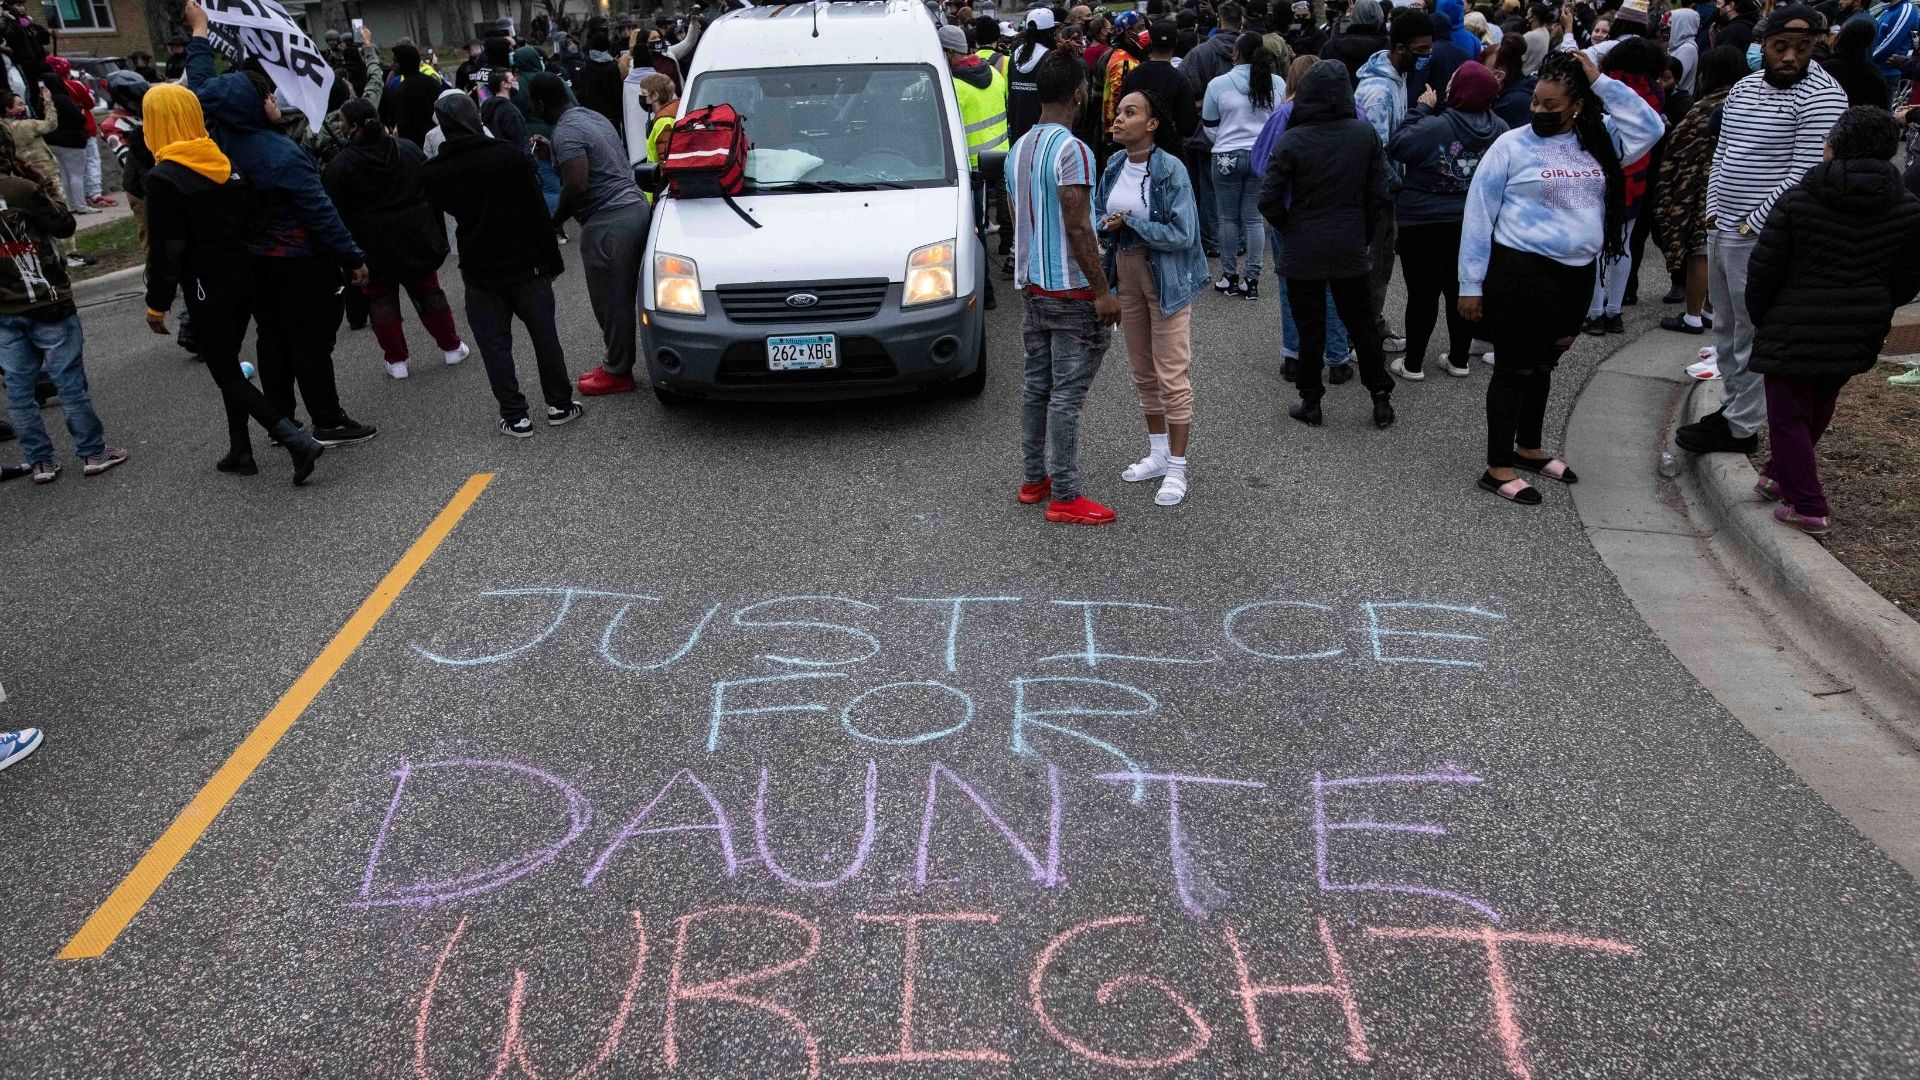 Protesters clash with police after a man, Daunte Wright, was shot and killed by local law enforcement on Sunday April 11, 2021, in Brooklyn Center, Minn. (AP Photo/Christian Monterrosa)